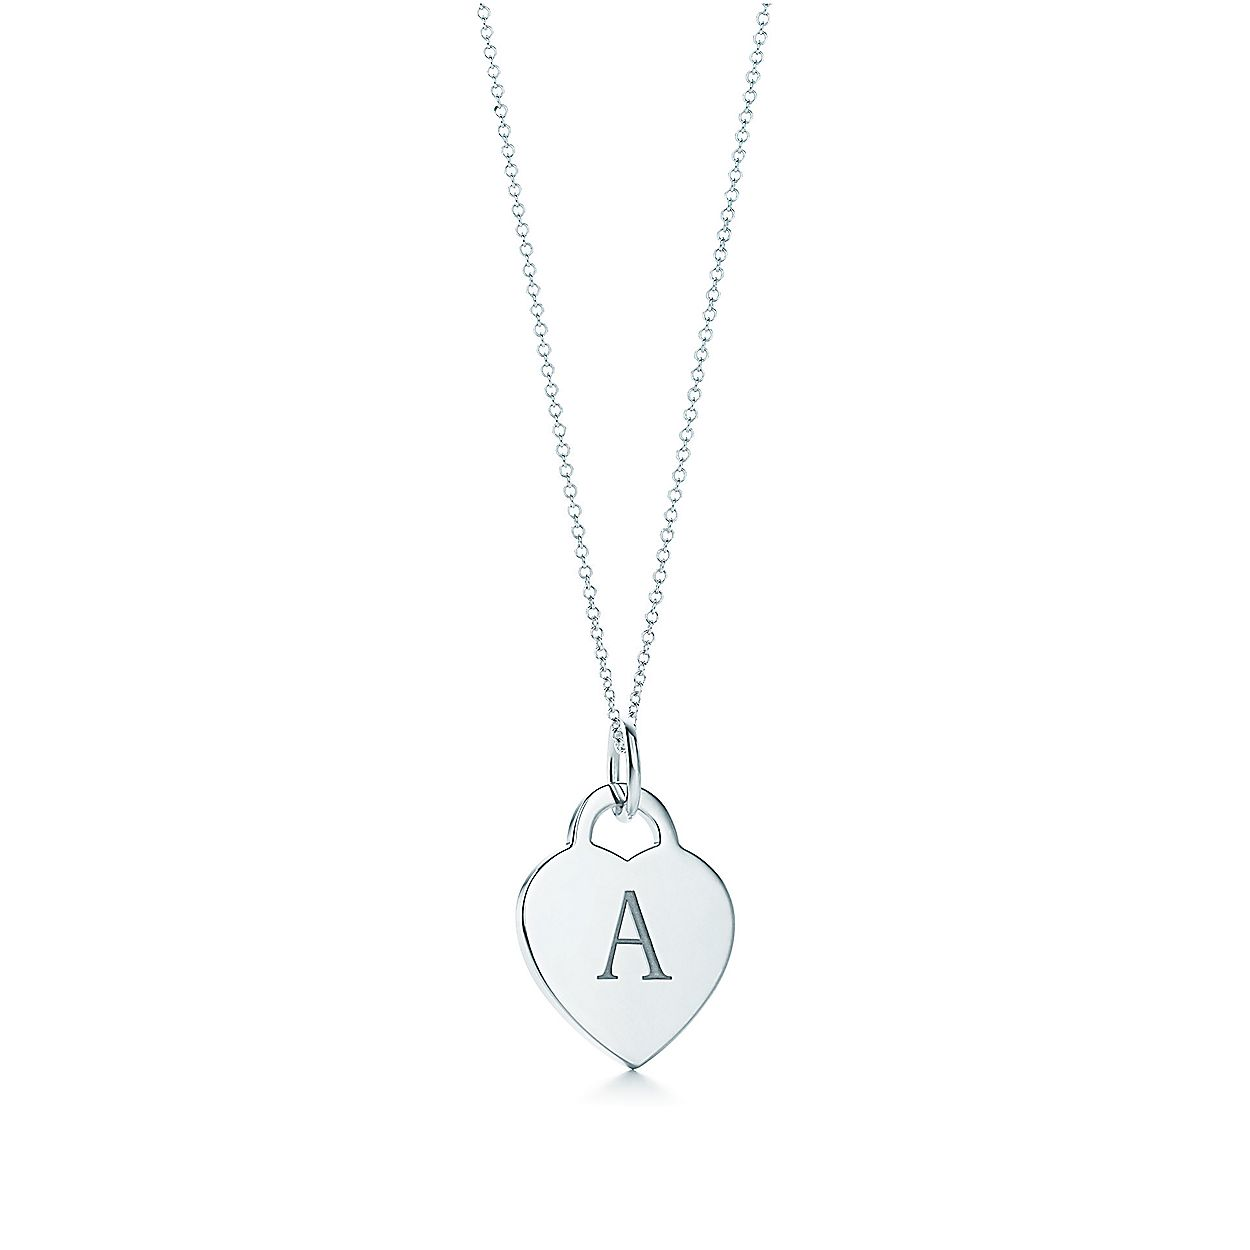 ebbd29d626bd Alphabet heart tag letter charm in silver on a chain. Letters A-Z ...